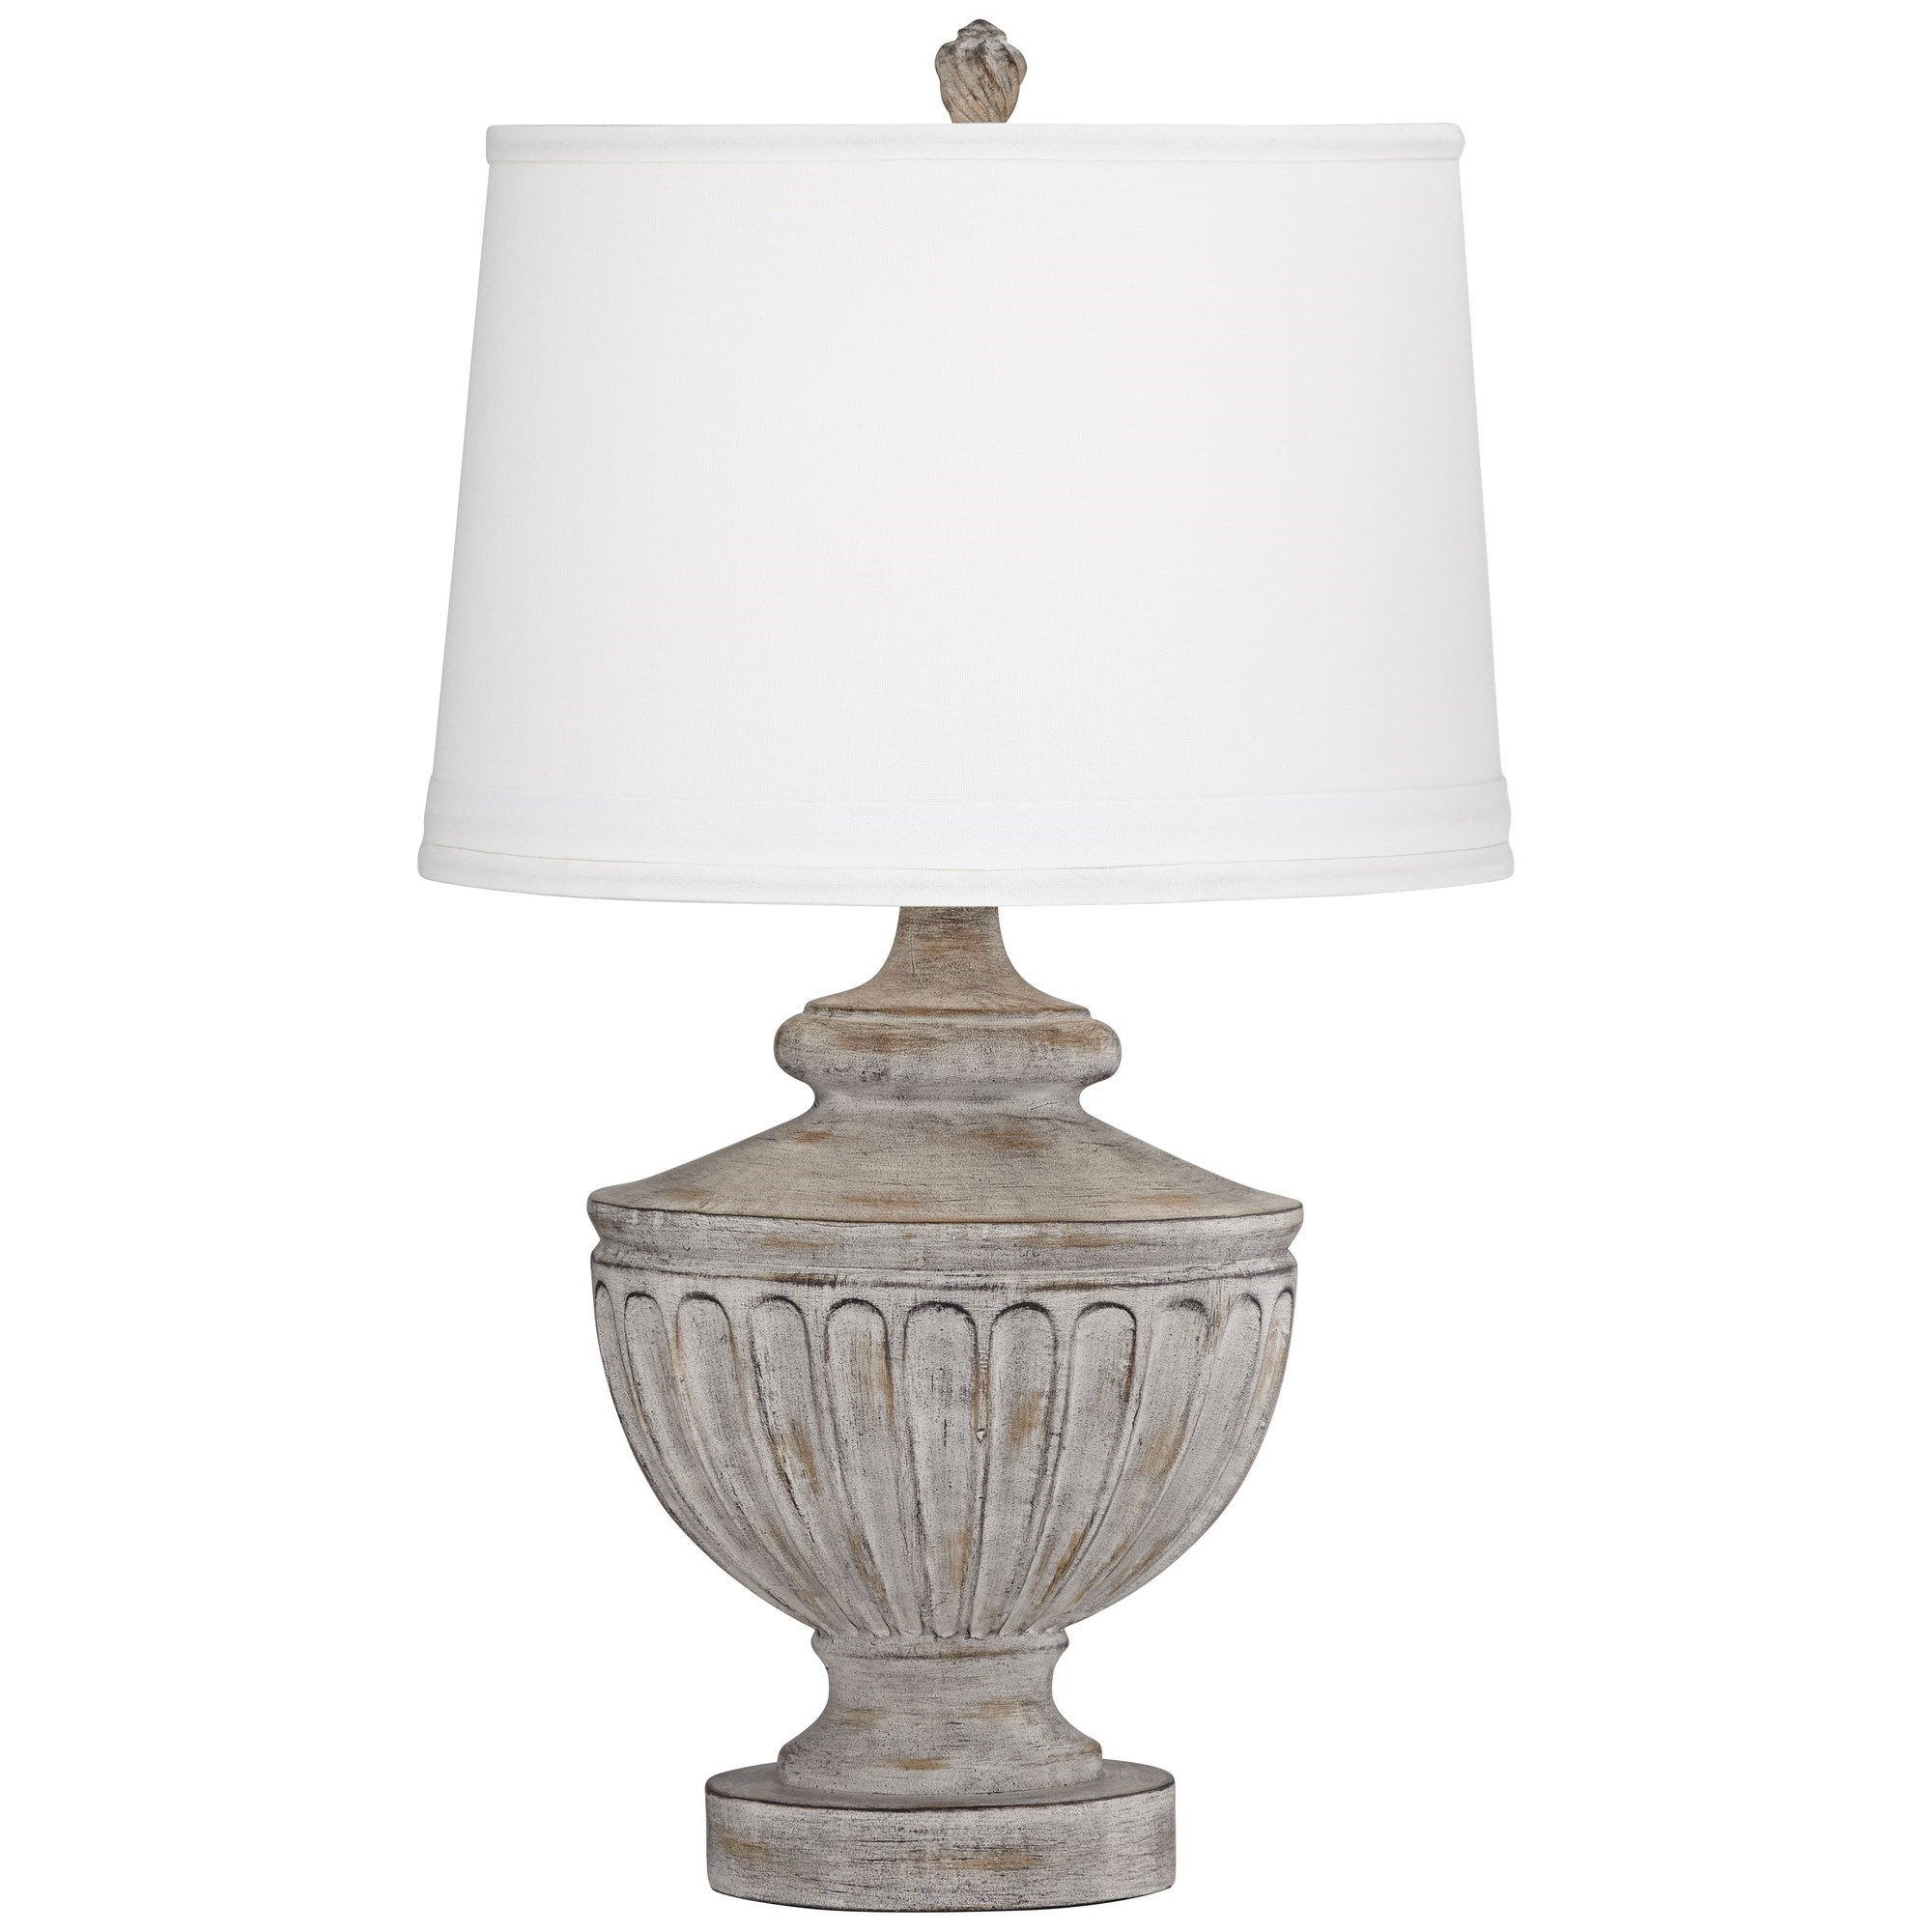 Table Lamps Table Lamp at Bennett's Furniture and Mattresses